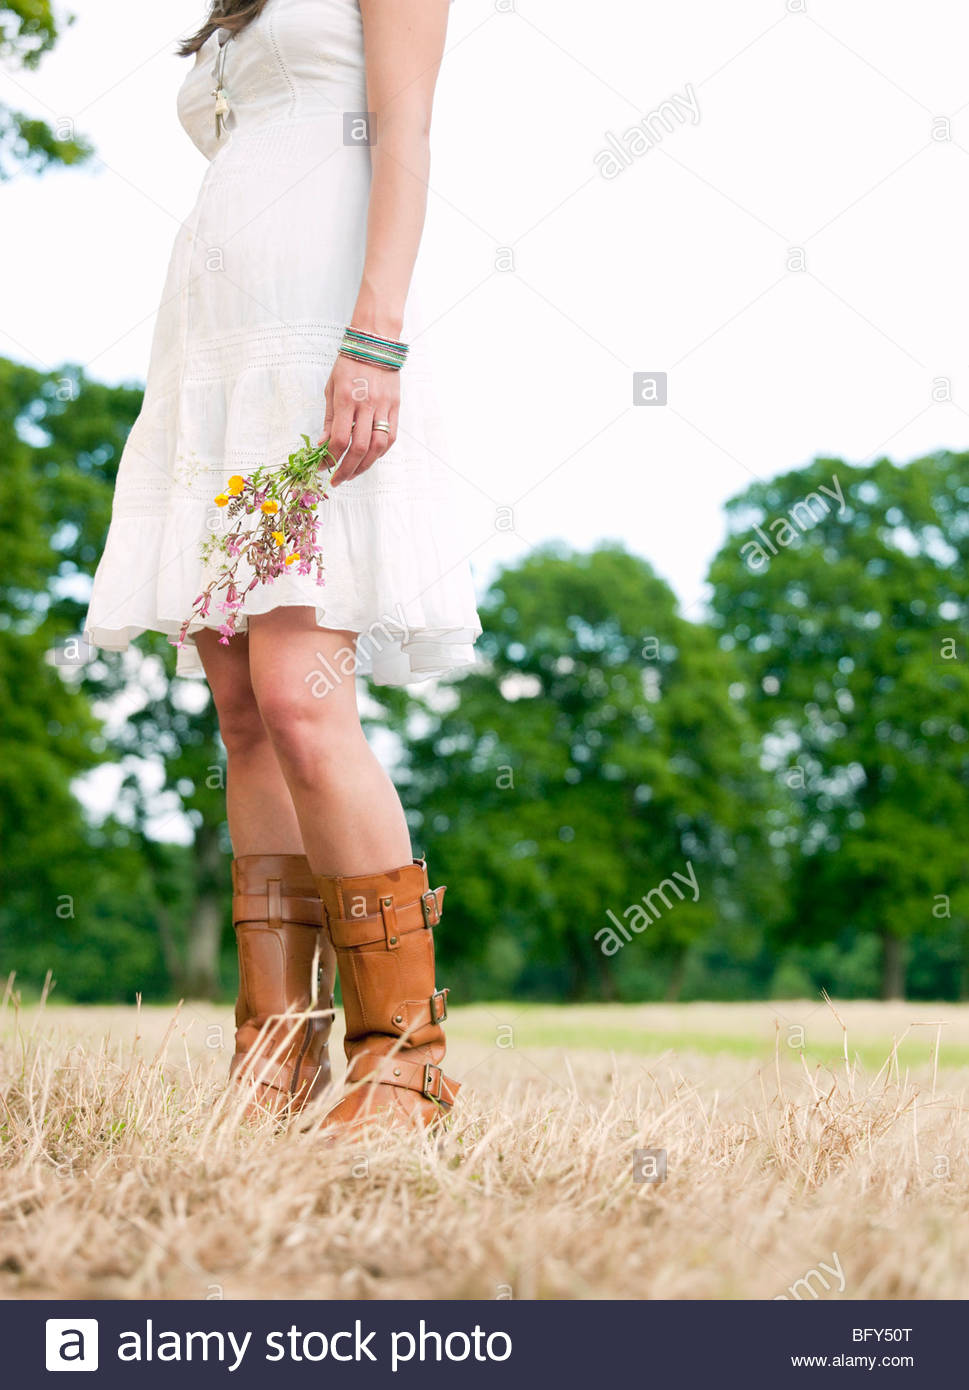 Woman in field holding flowers - Stock Image